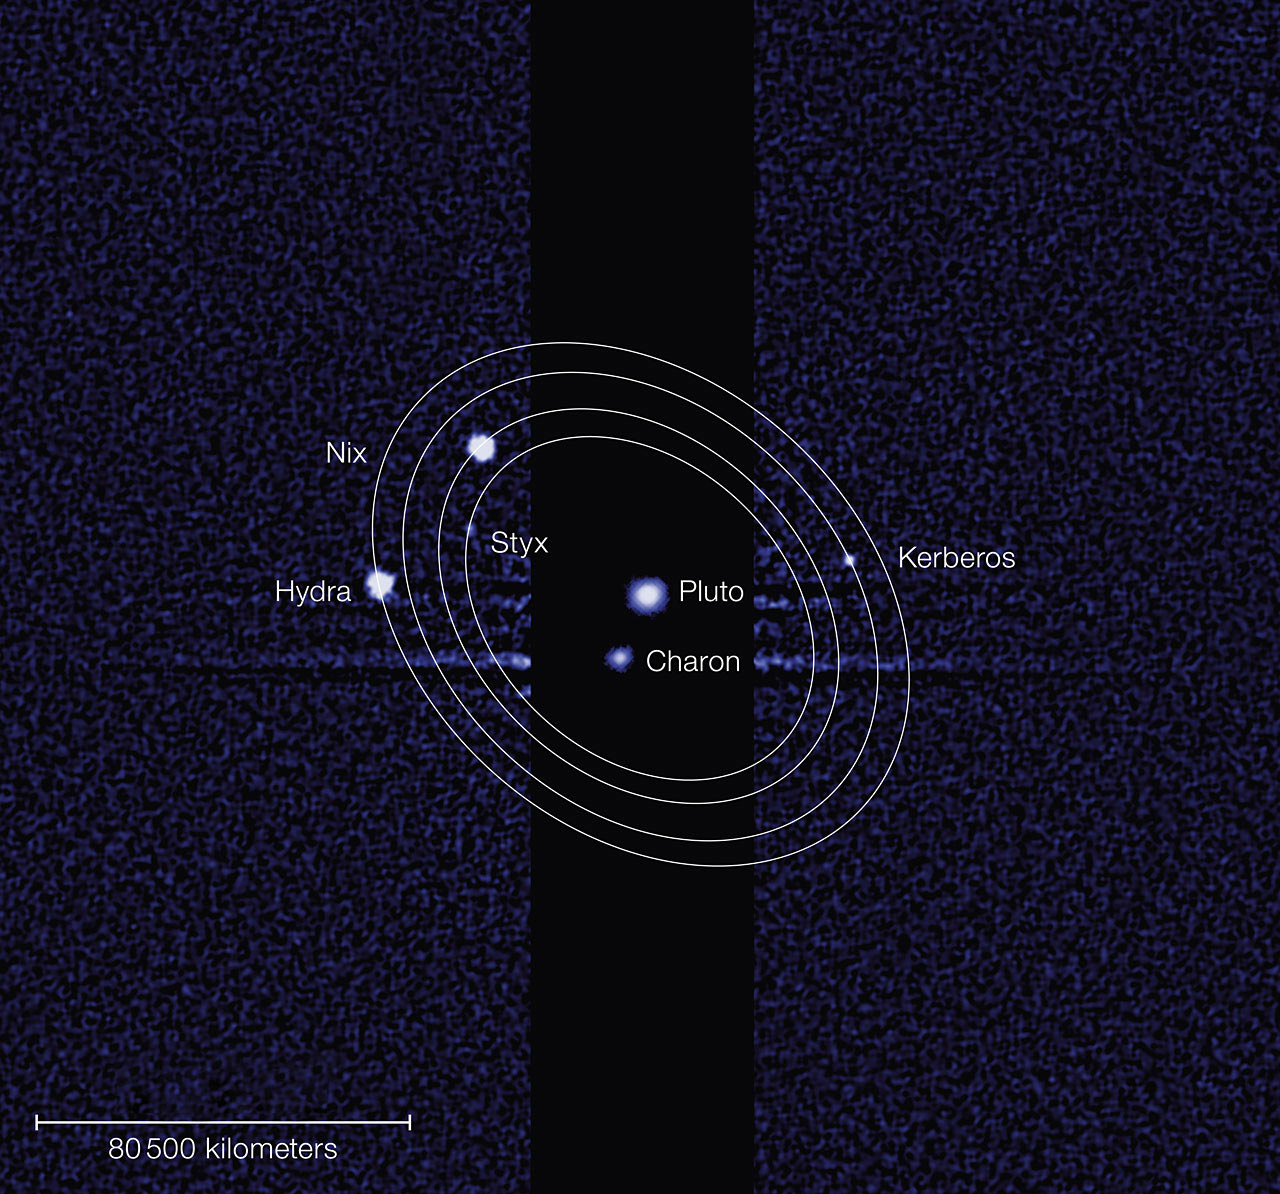 Kerberos Moon Of Plluto: Kerberos And Styx: Pluto's Two Recently Discovered Moons